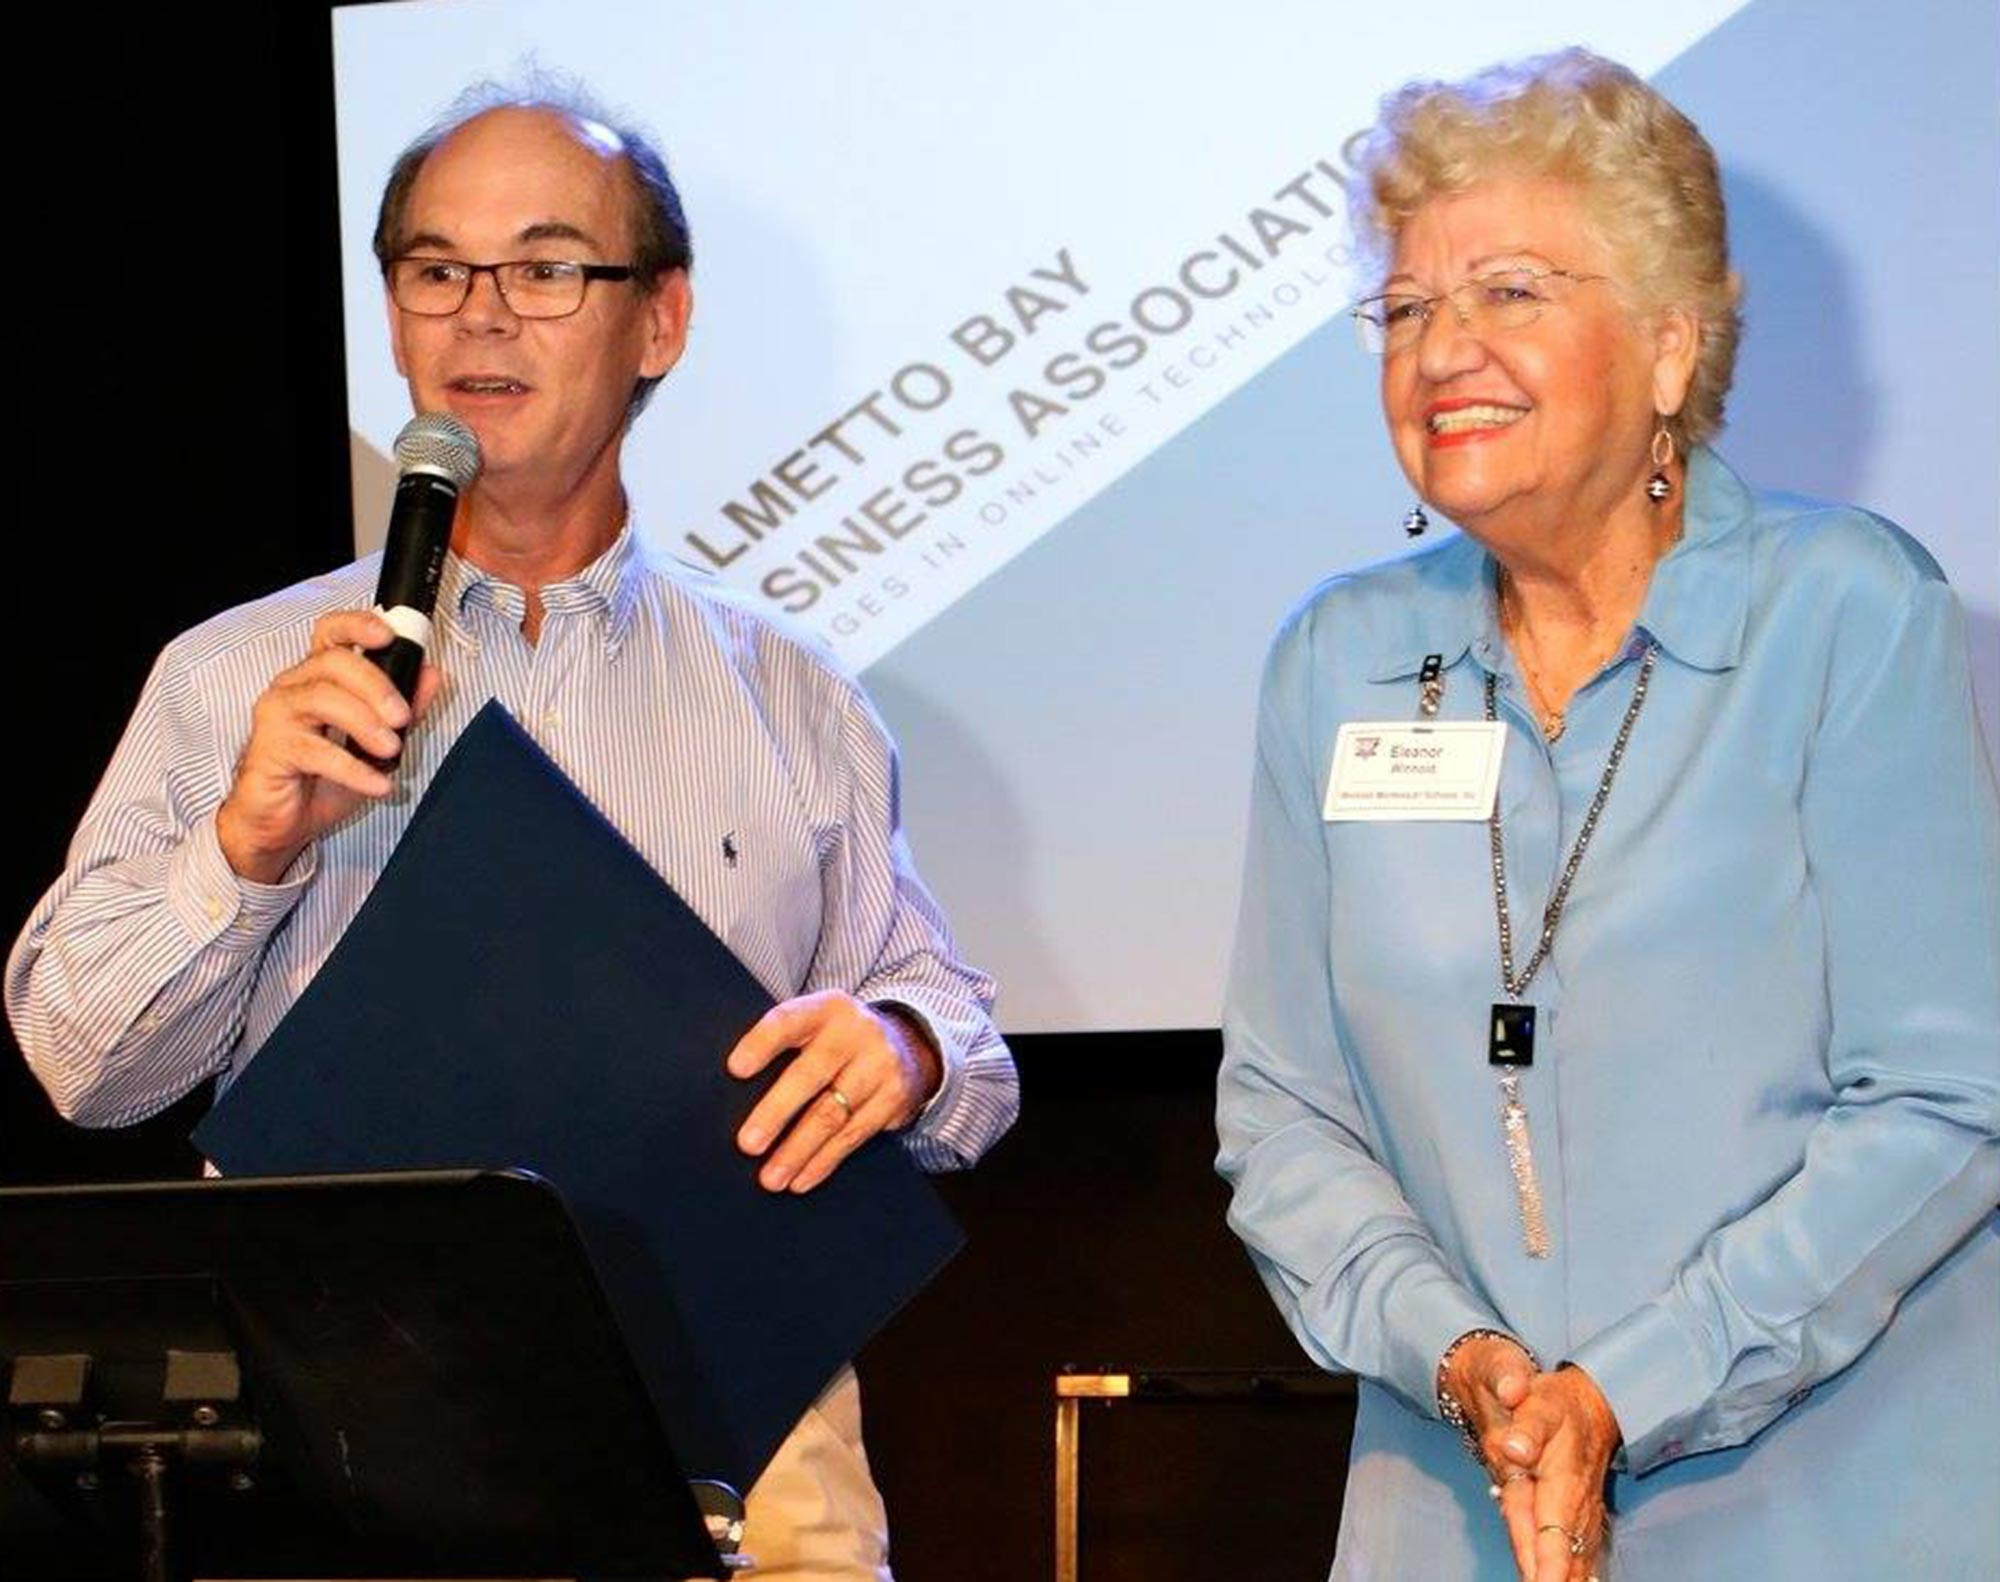 Mayor Flinn provides Winhold with proclamation for her work (January 2016)